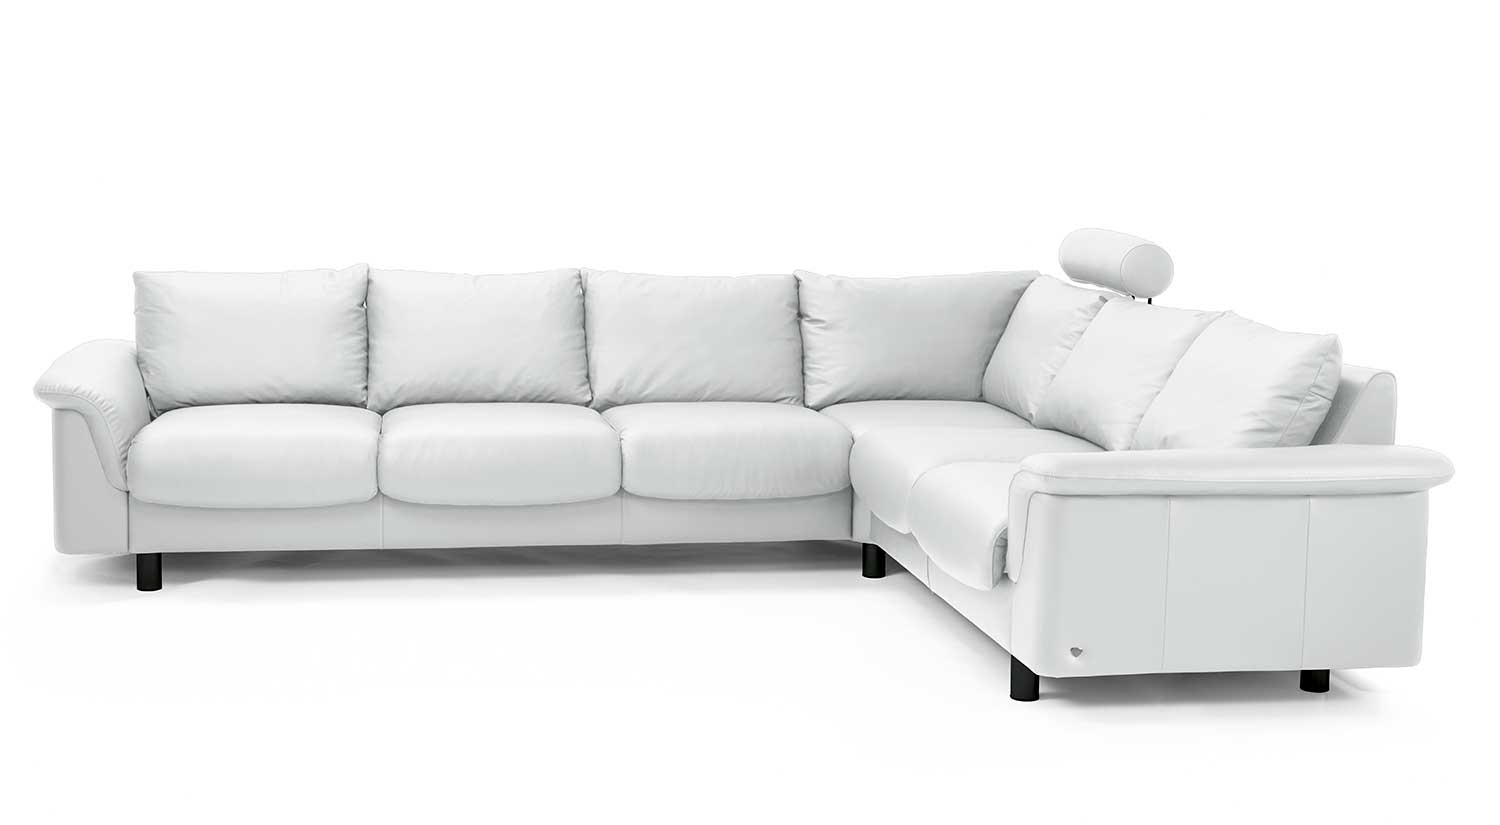 Circle Furniture E300 Ekornes Sectional Designer Sectionals Ma With Ekornes Sectional Sofa (Image 3 of 15)